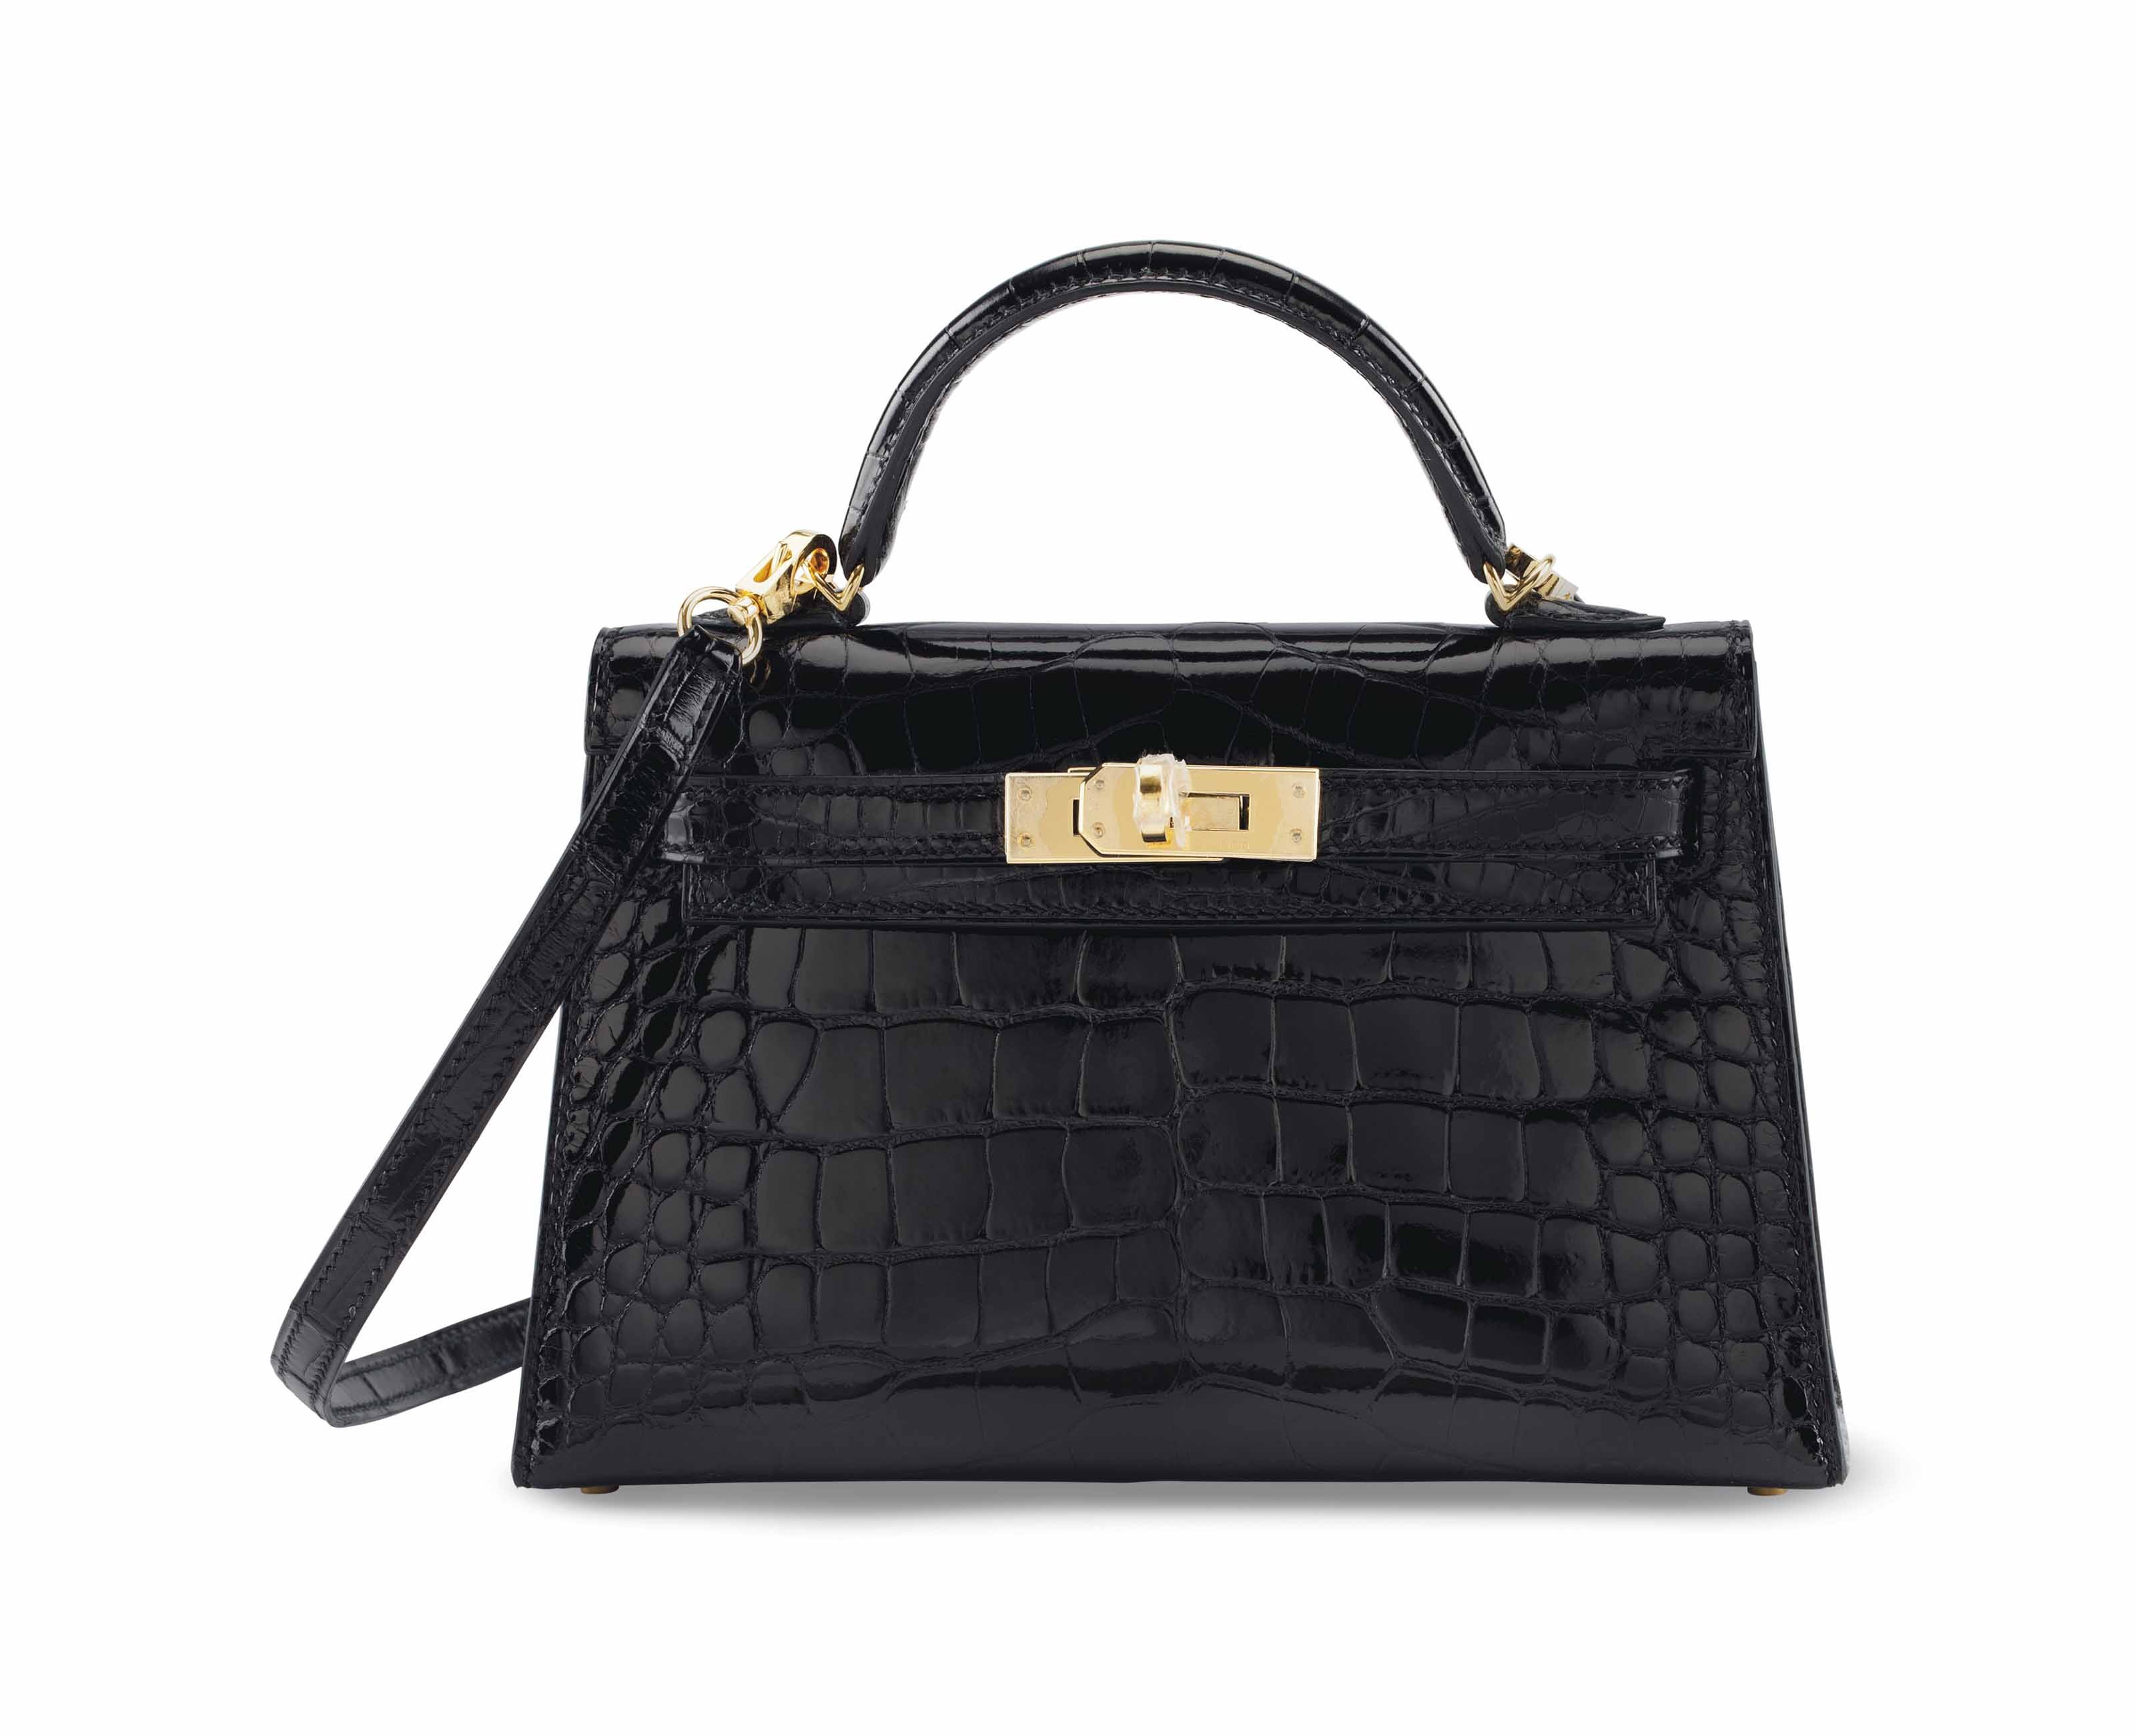 Discount 2018 Unisex Hermès Kelly Alligator Mini Bag Free Shipping Best Prices Free Shipping 100% Guaranteed Free Shipping Pay With Paypal SFGQ7ibC